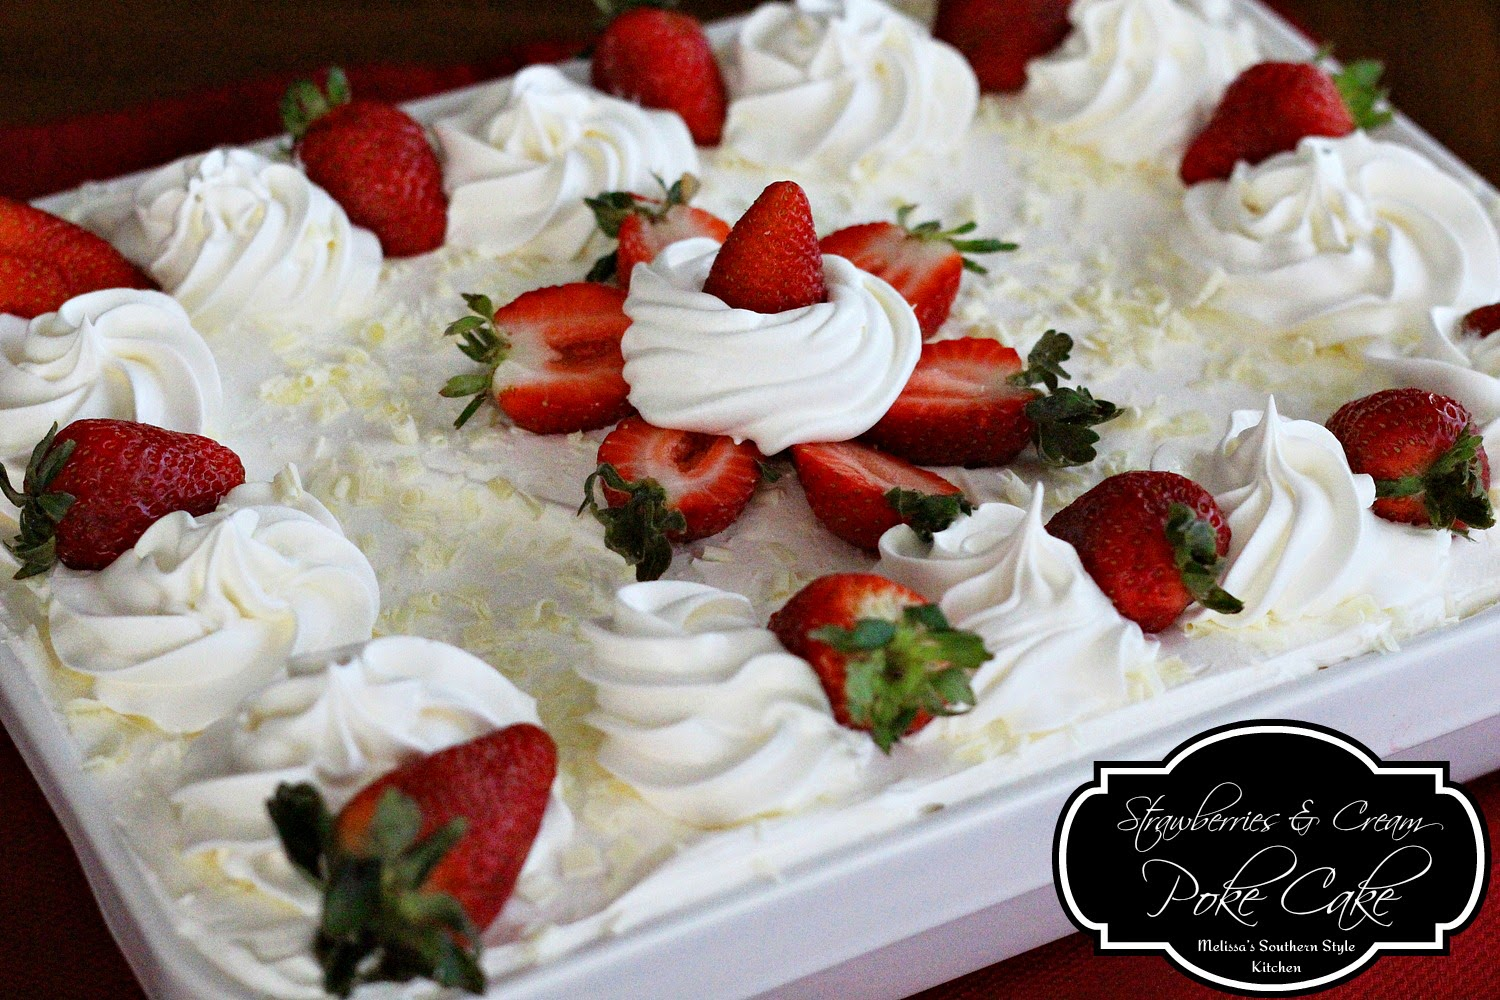 Chocolate Covered Strawberry Poke Cake